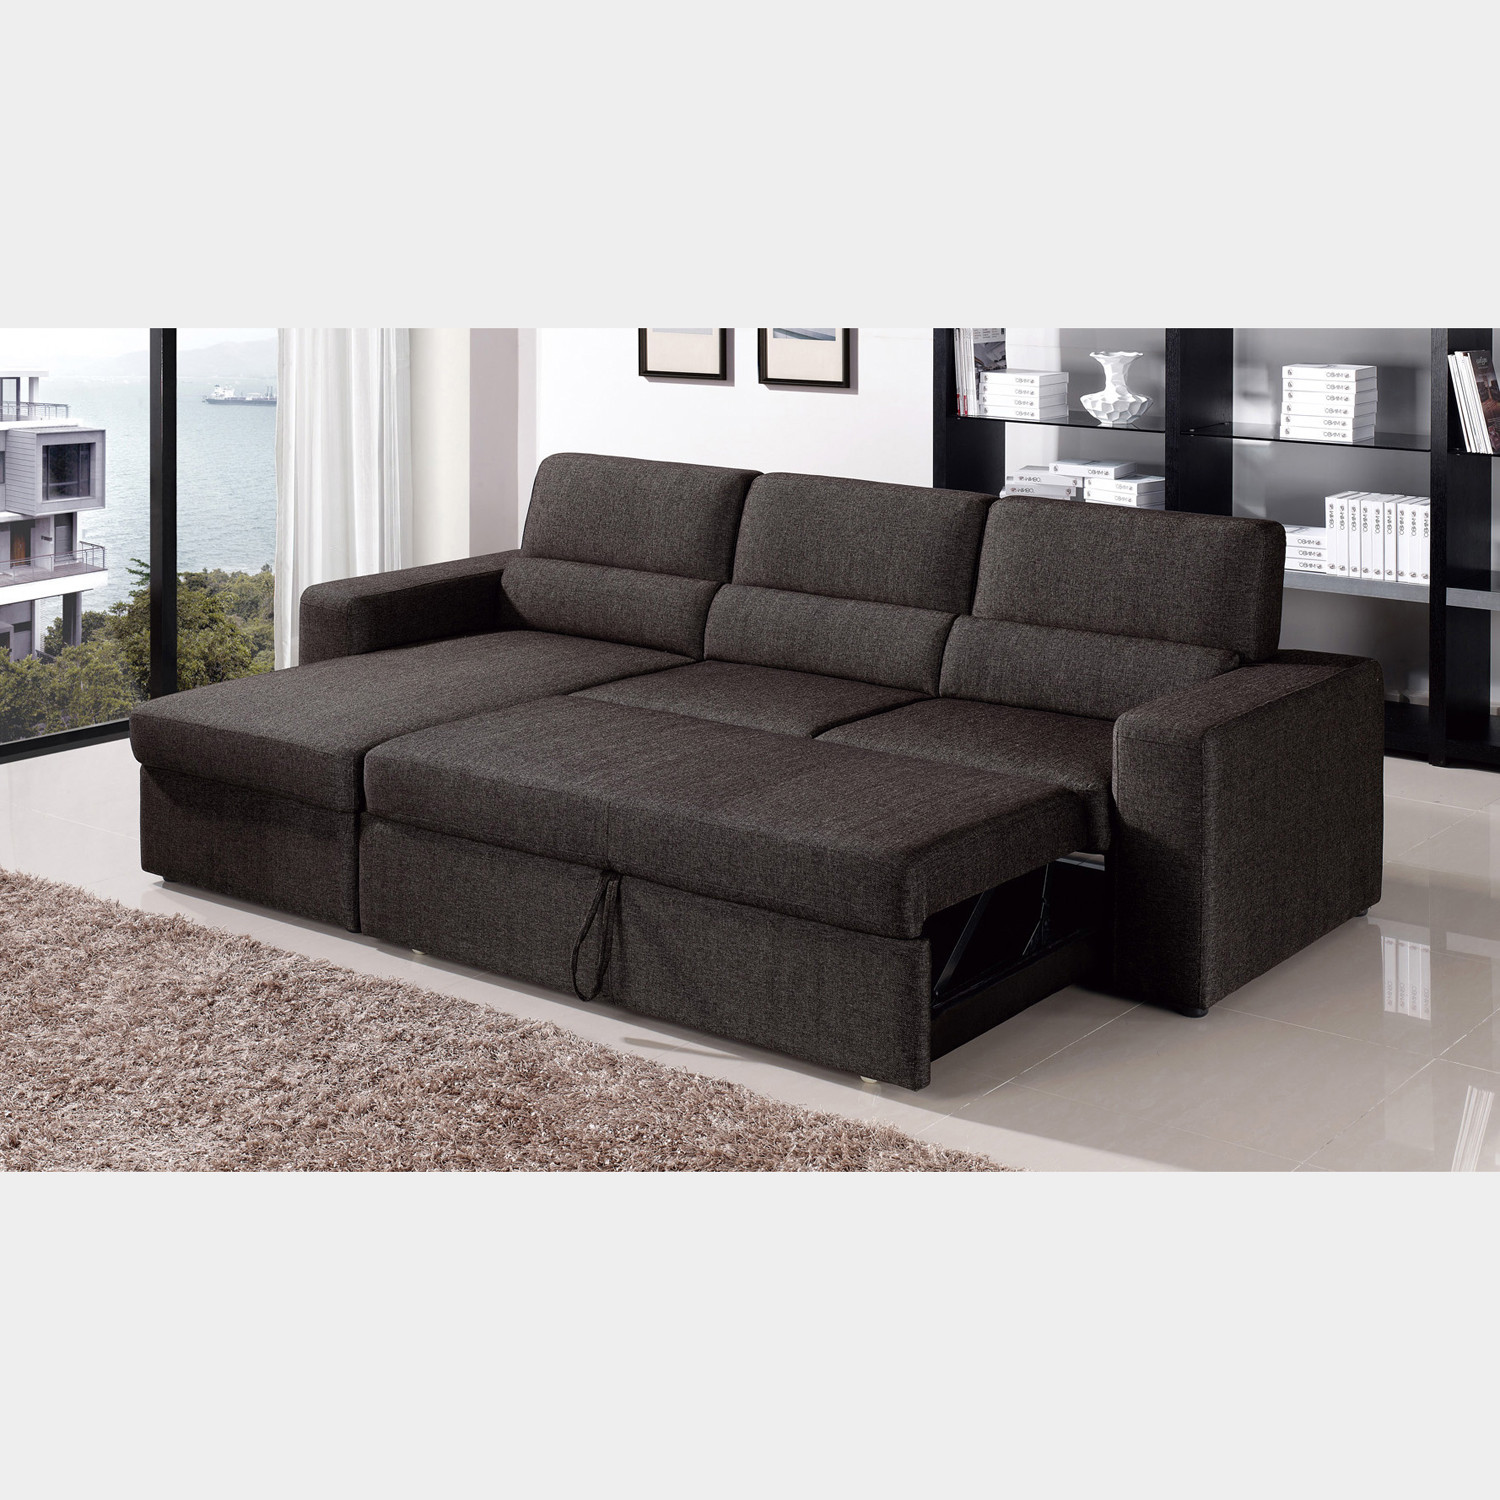 Clubber sleeper sectional left chaise black brown for Brown sectional with chaise